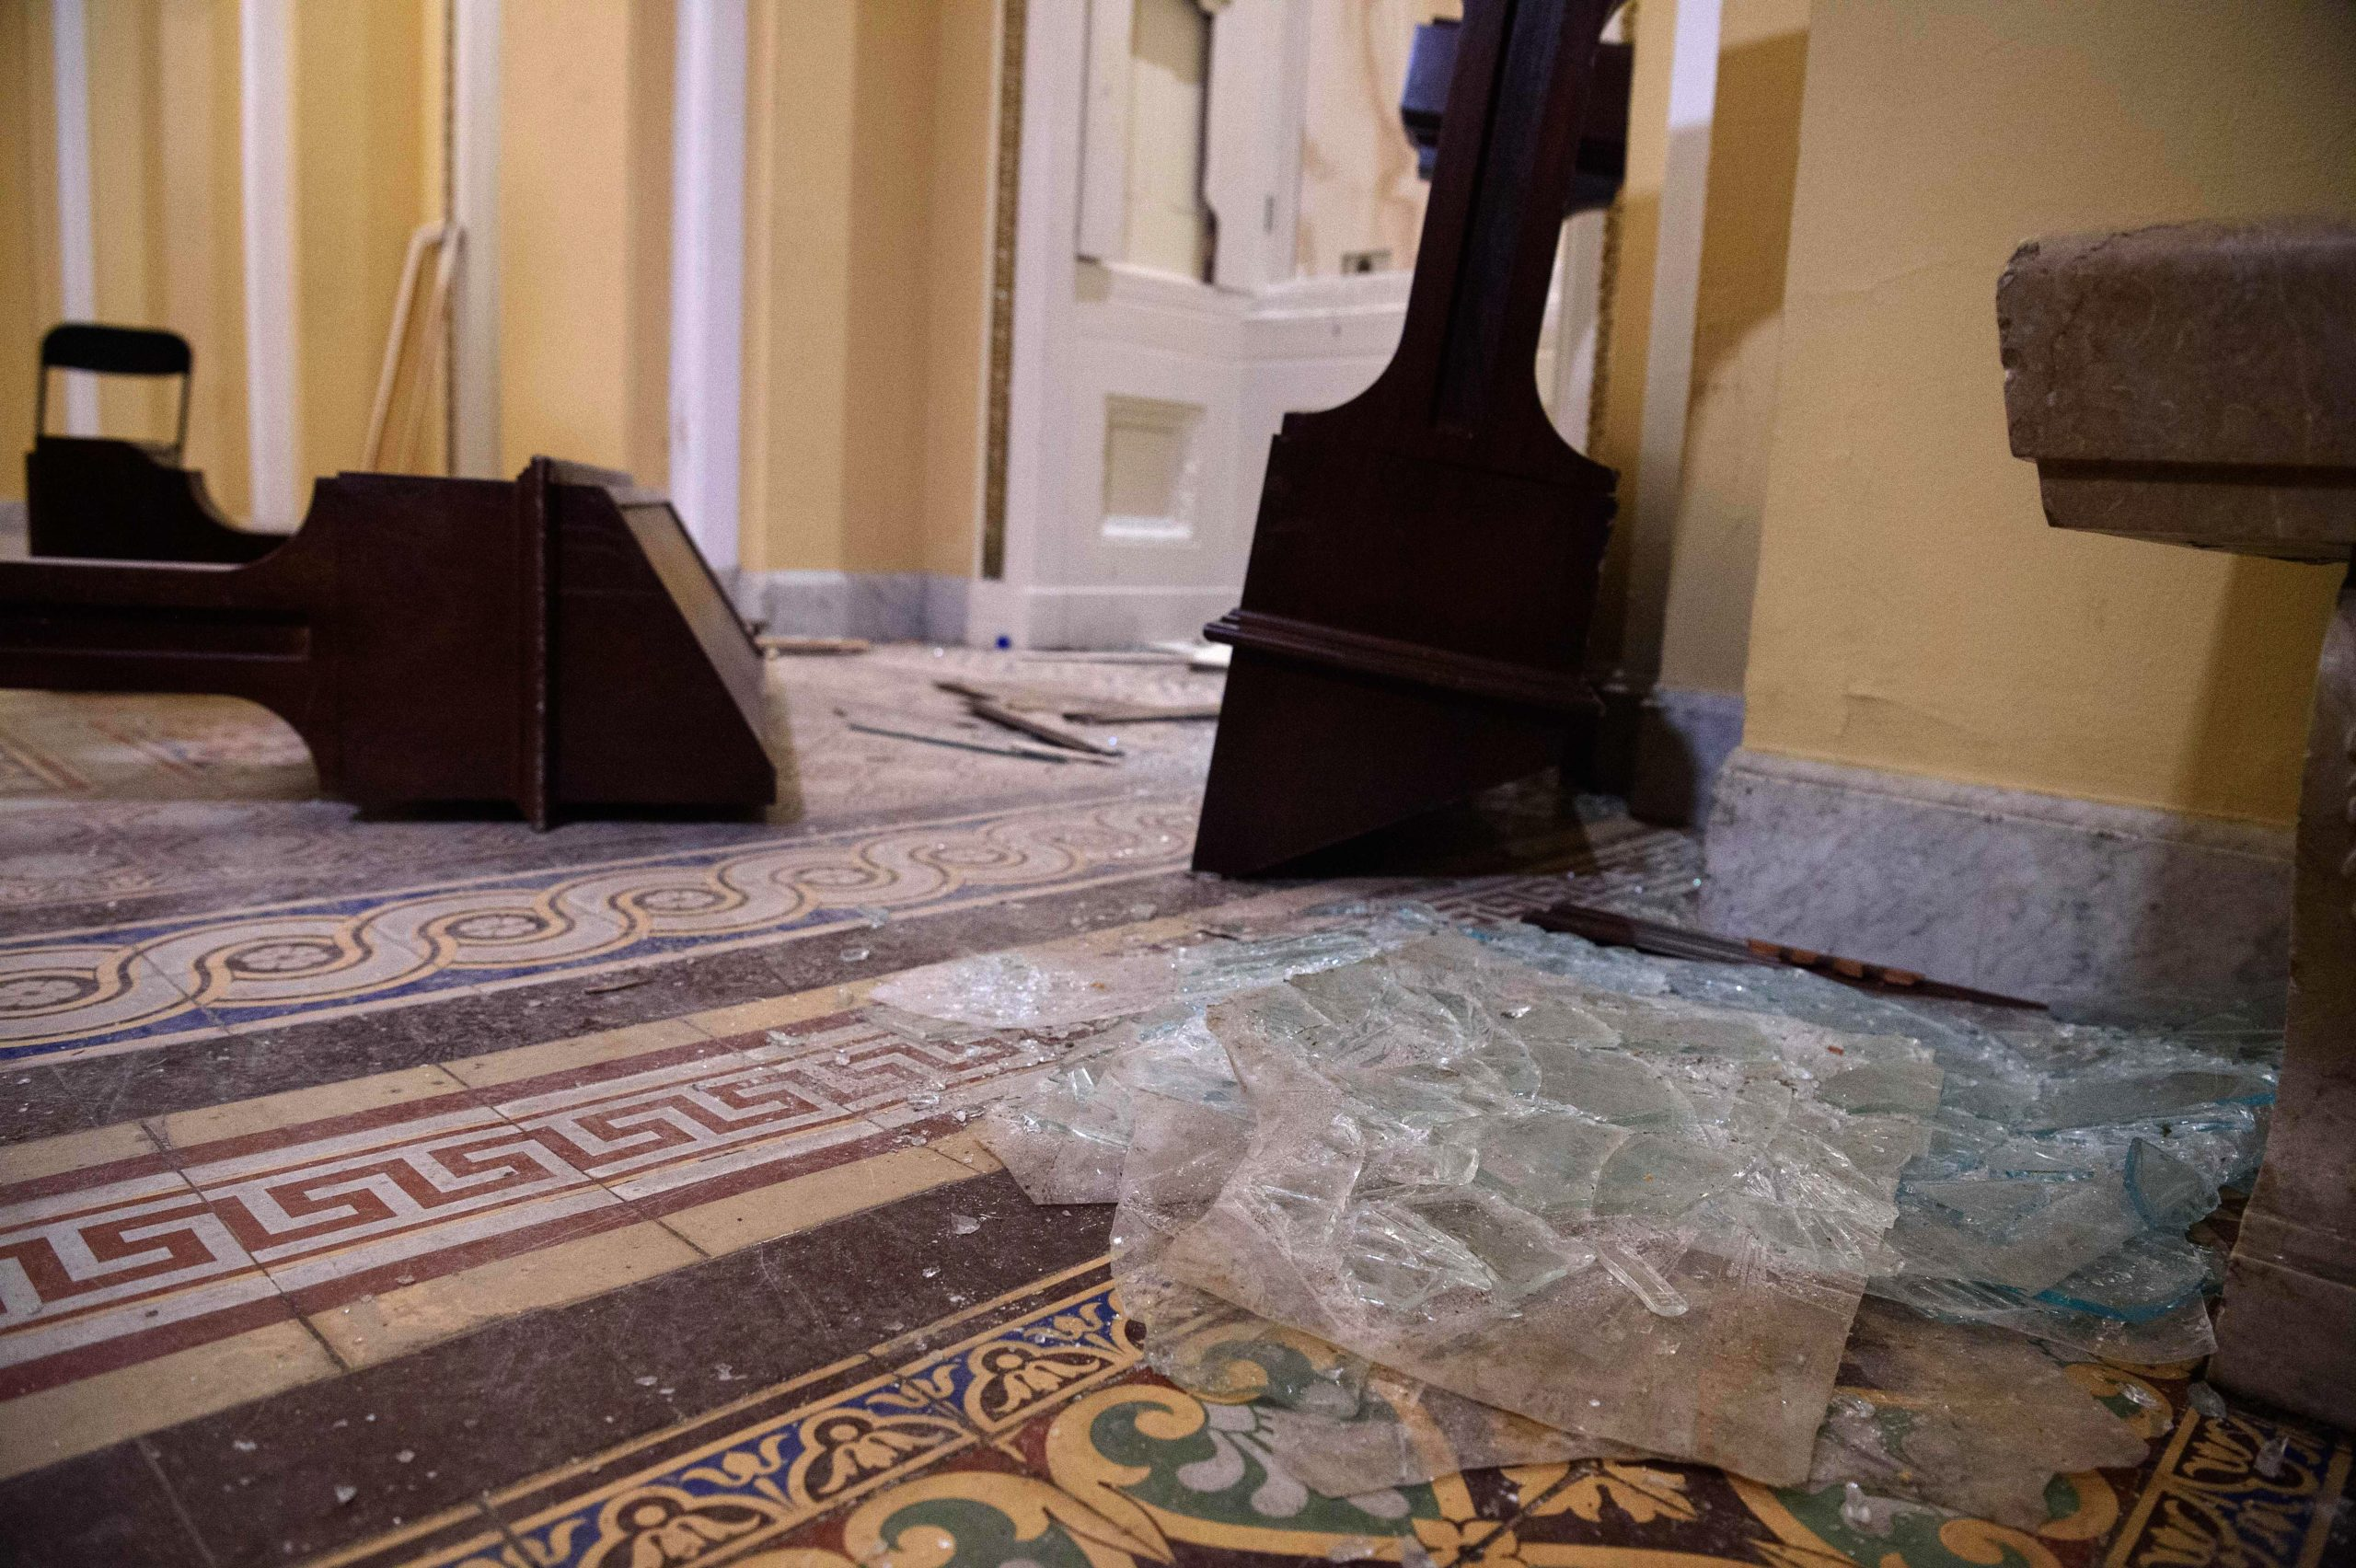 Overturned furniture and broken glass litter a hallway of the US Capitol in Washington, DC, on January 7, 2021, one day after supporters of outgoing President Donald Trump stormed the building. (Photo by Nicholas Kamm/AFP via Getty Images)